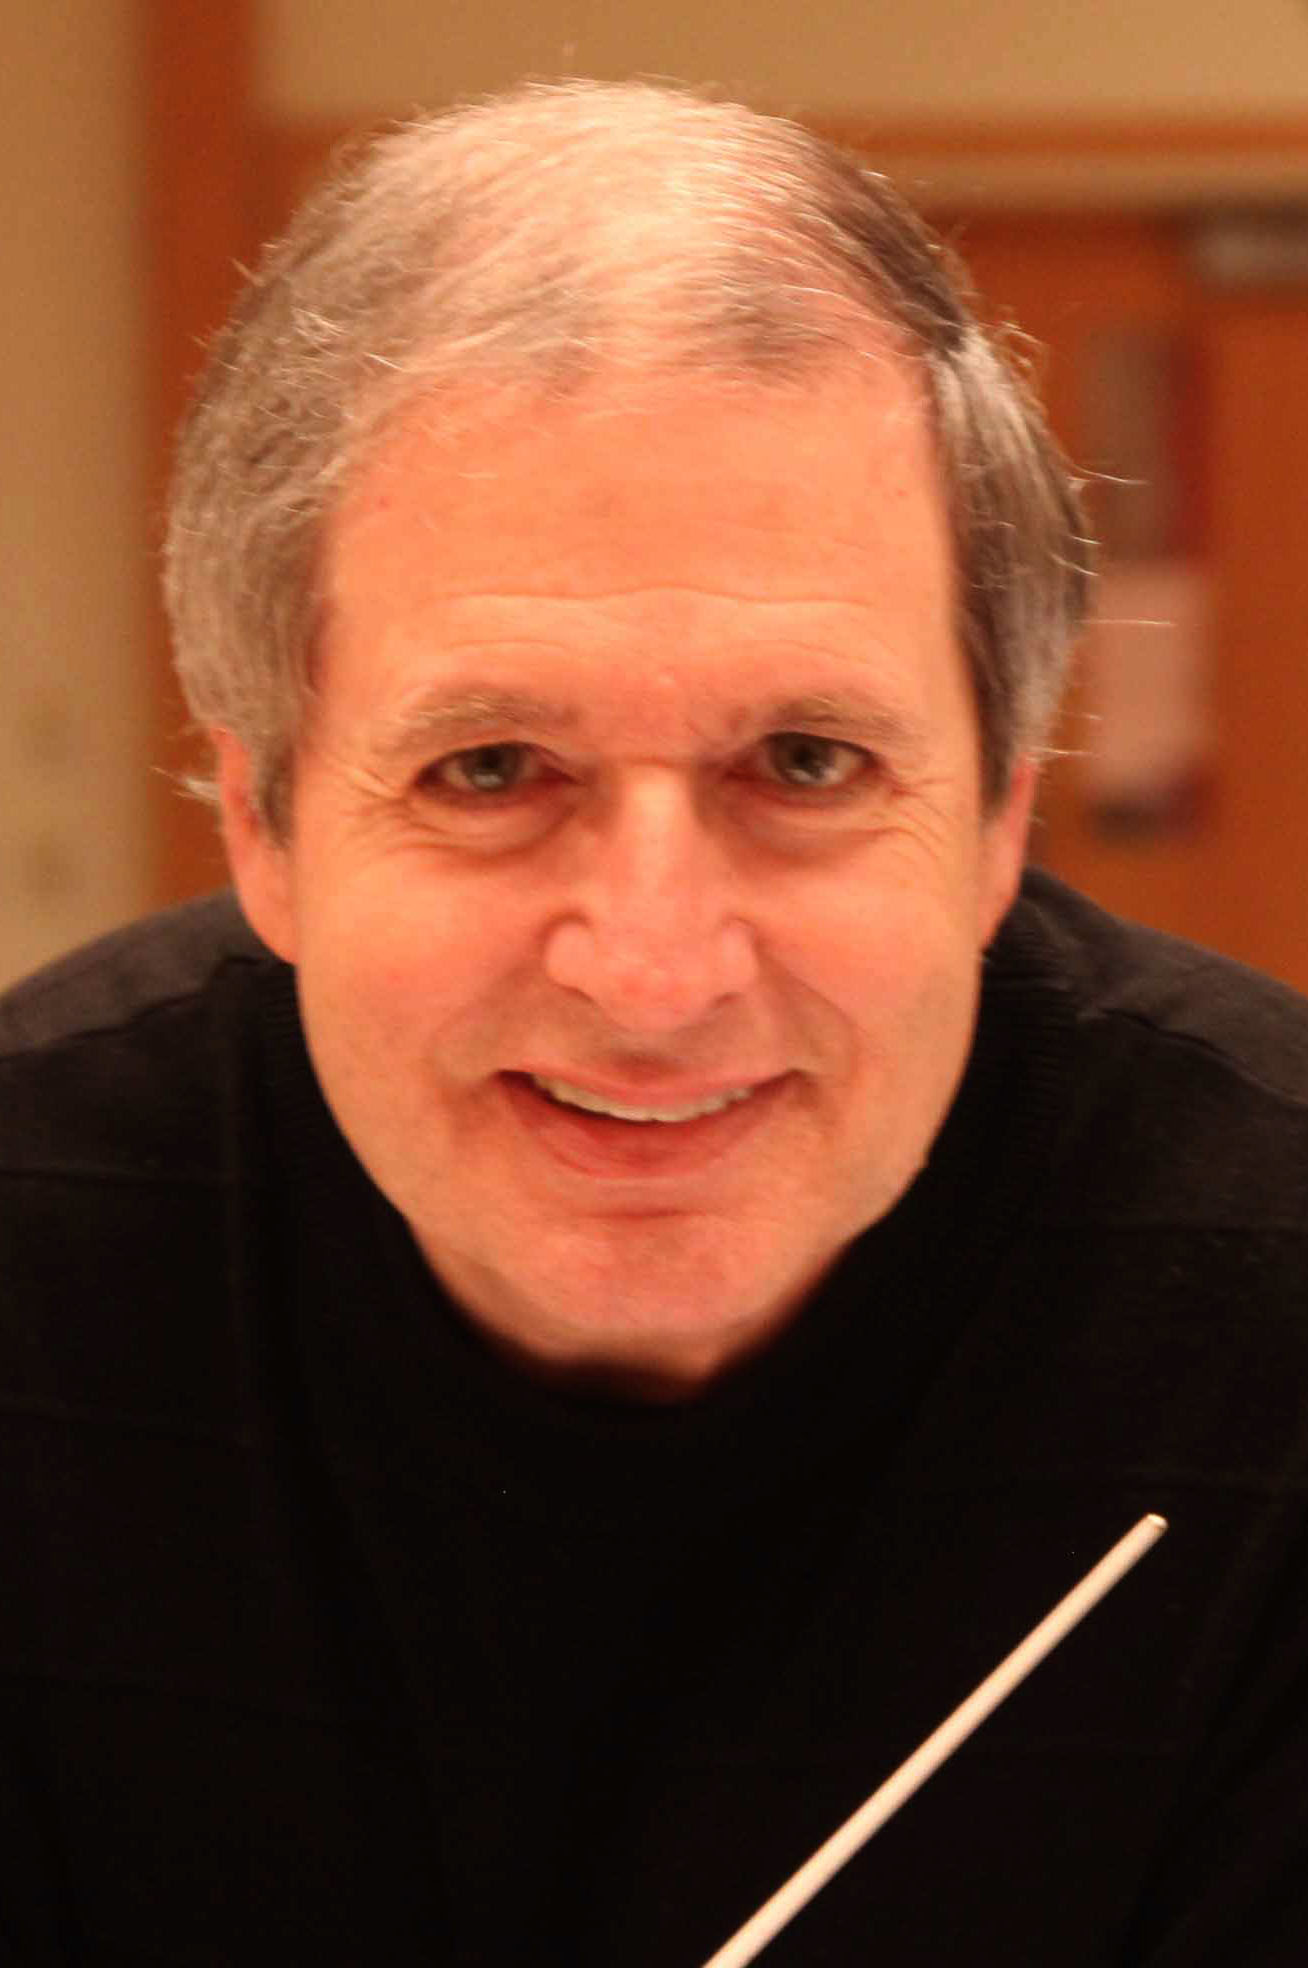 Gerald Sousa has held the position of BCS Artistic Director since 1989. Dr. Sousa received his bachelor's and master's degrees from the University of North Carolina at Chapel Hill, and his doctorate in Choral Conducting, summa cum laude, from Indiana University. He has held positions at the University of New Orleans, Dartmouth College, and the University of North Carolina, and has performed professionally at the Aspen Summer Music Festival. Dr. Sousa is currently Director of Music at St. Mark's United Methodist Church in Bloomington, and is active as an arts advocate and technology consultant. He has served on the boards of local arts organizations, including the former Bloomington Area Arts Council, which he led as President for a number of years.